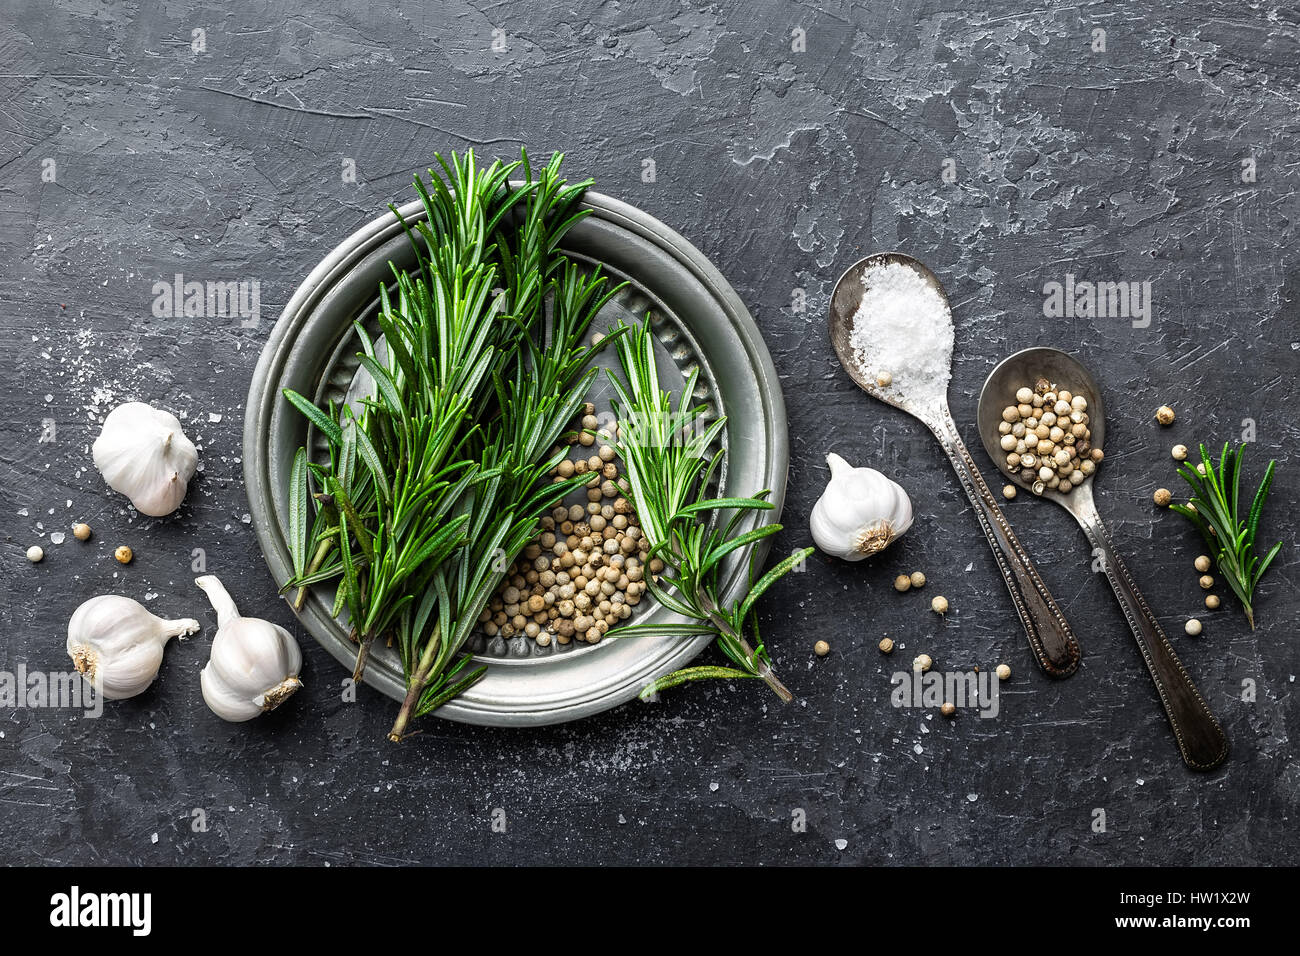 Rosemary, garlic, salt and white pepper, culinary background with various spices, directly above, flat lay, copy - Stock Image